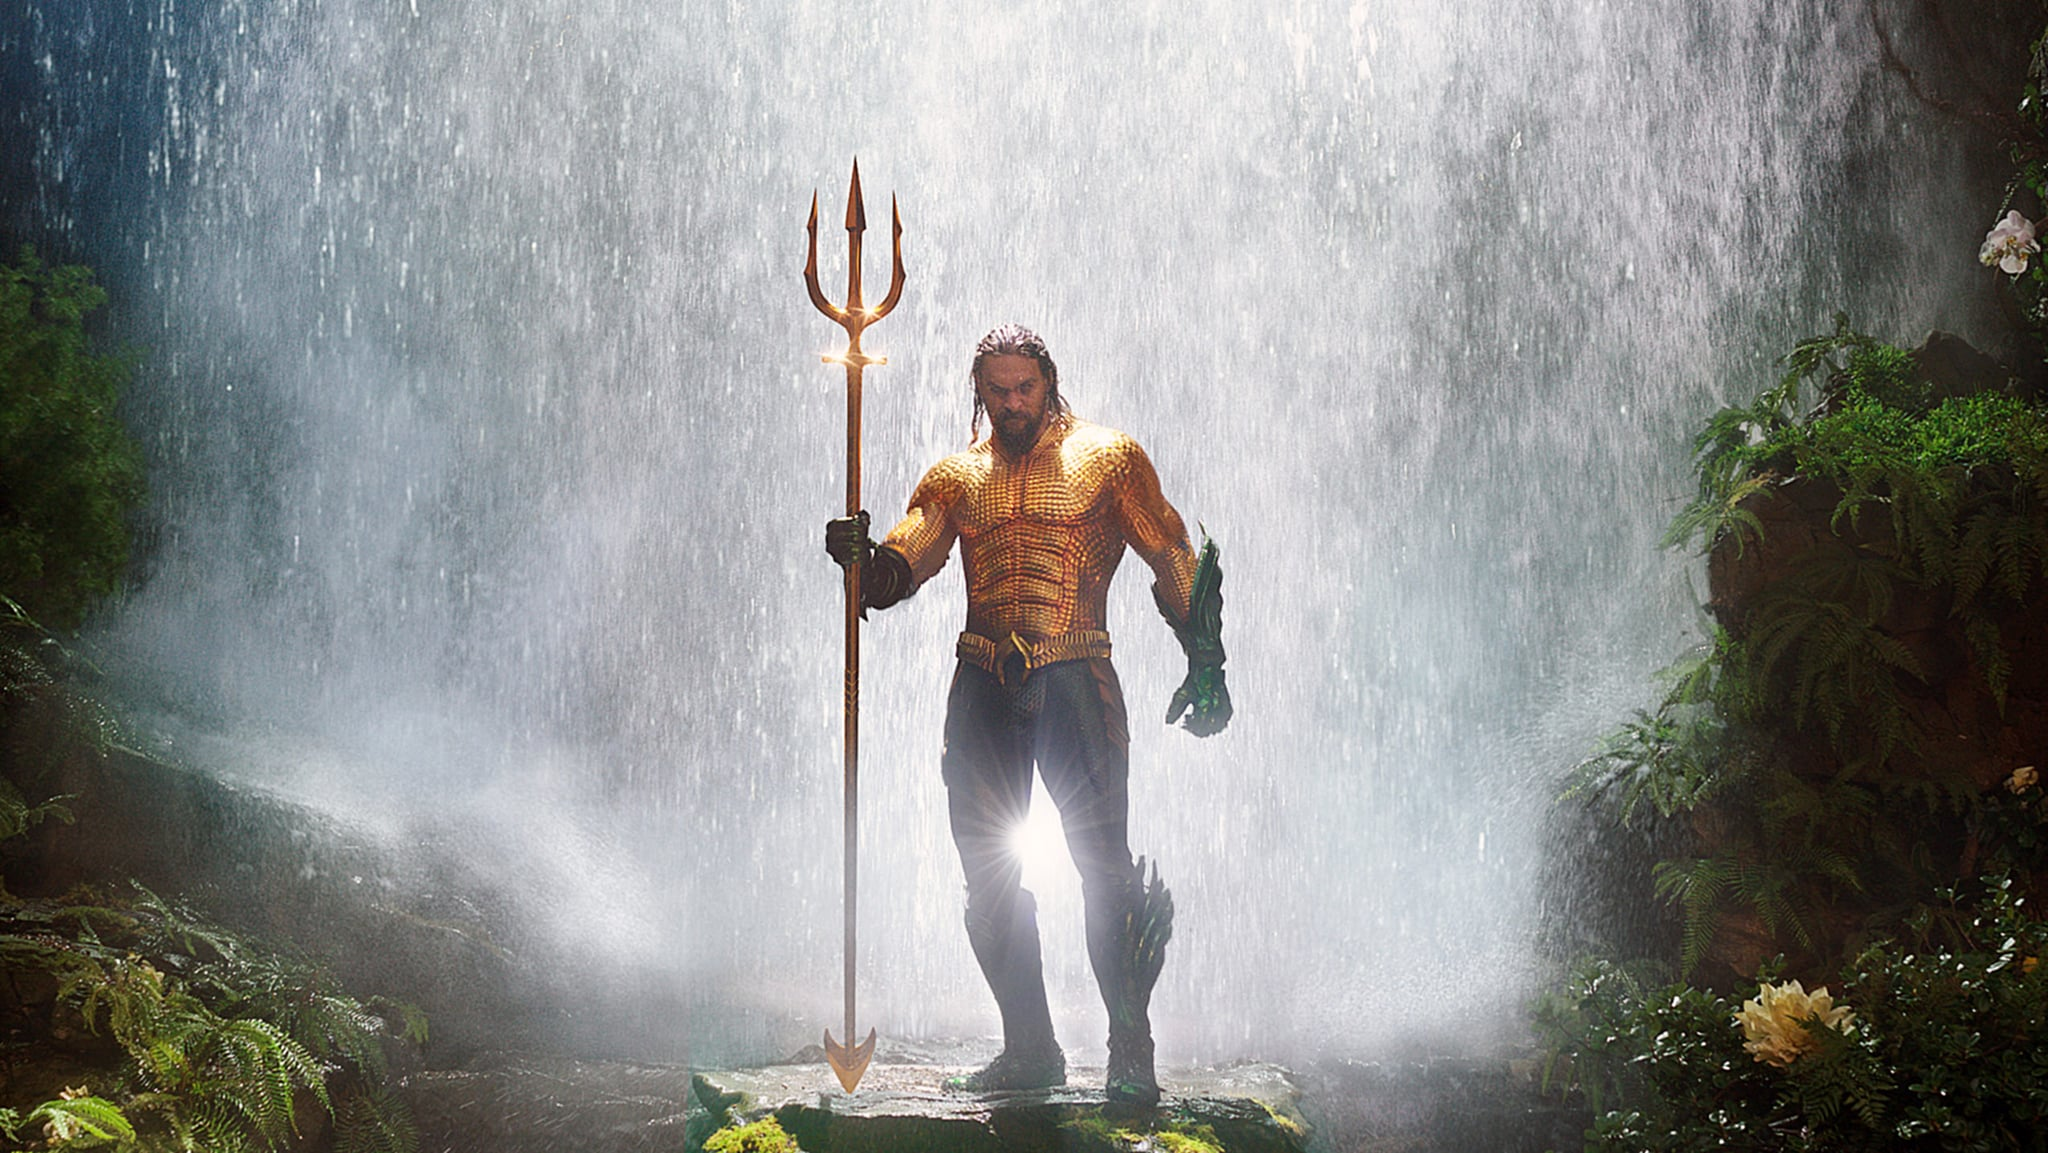 AQUAMAN, Jason Momoa, 2018.  Warner Bros./courtesy Everett Collection